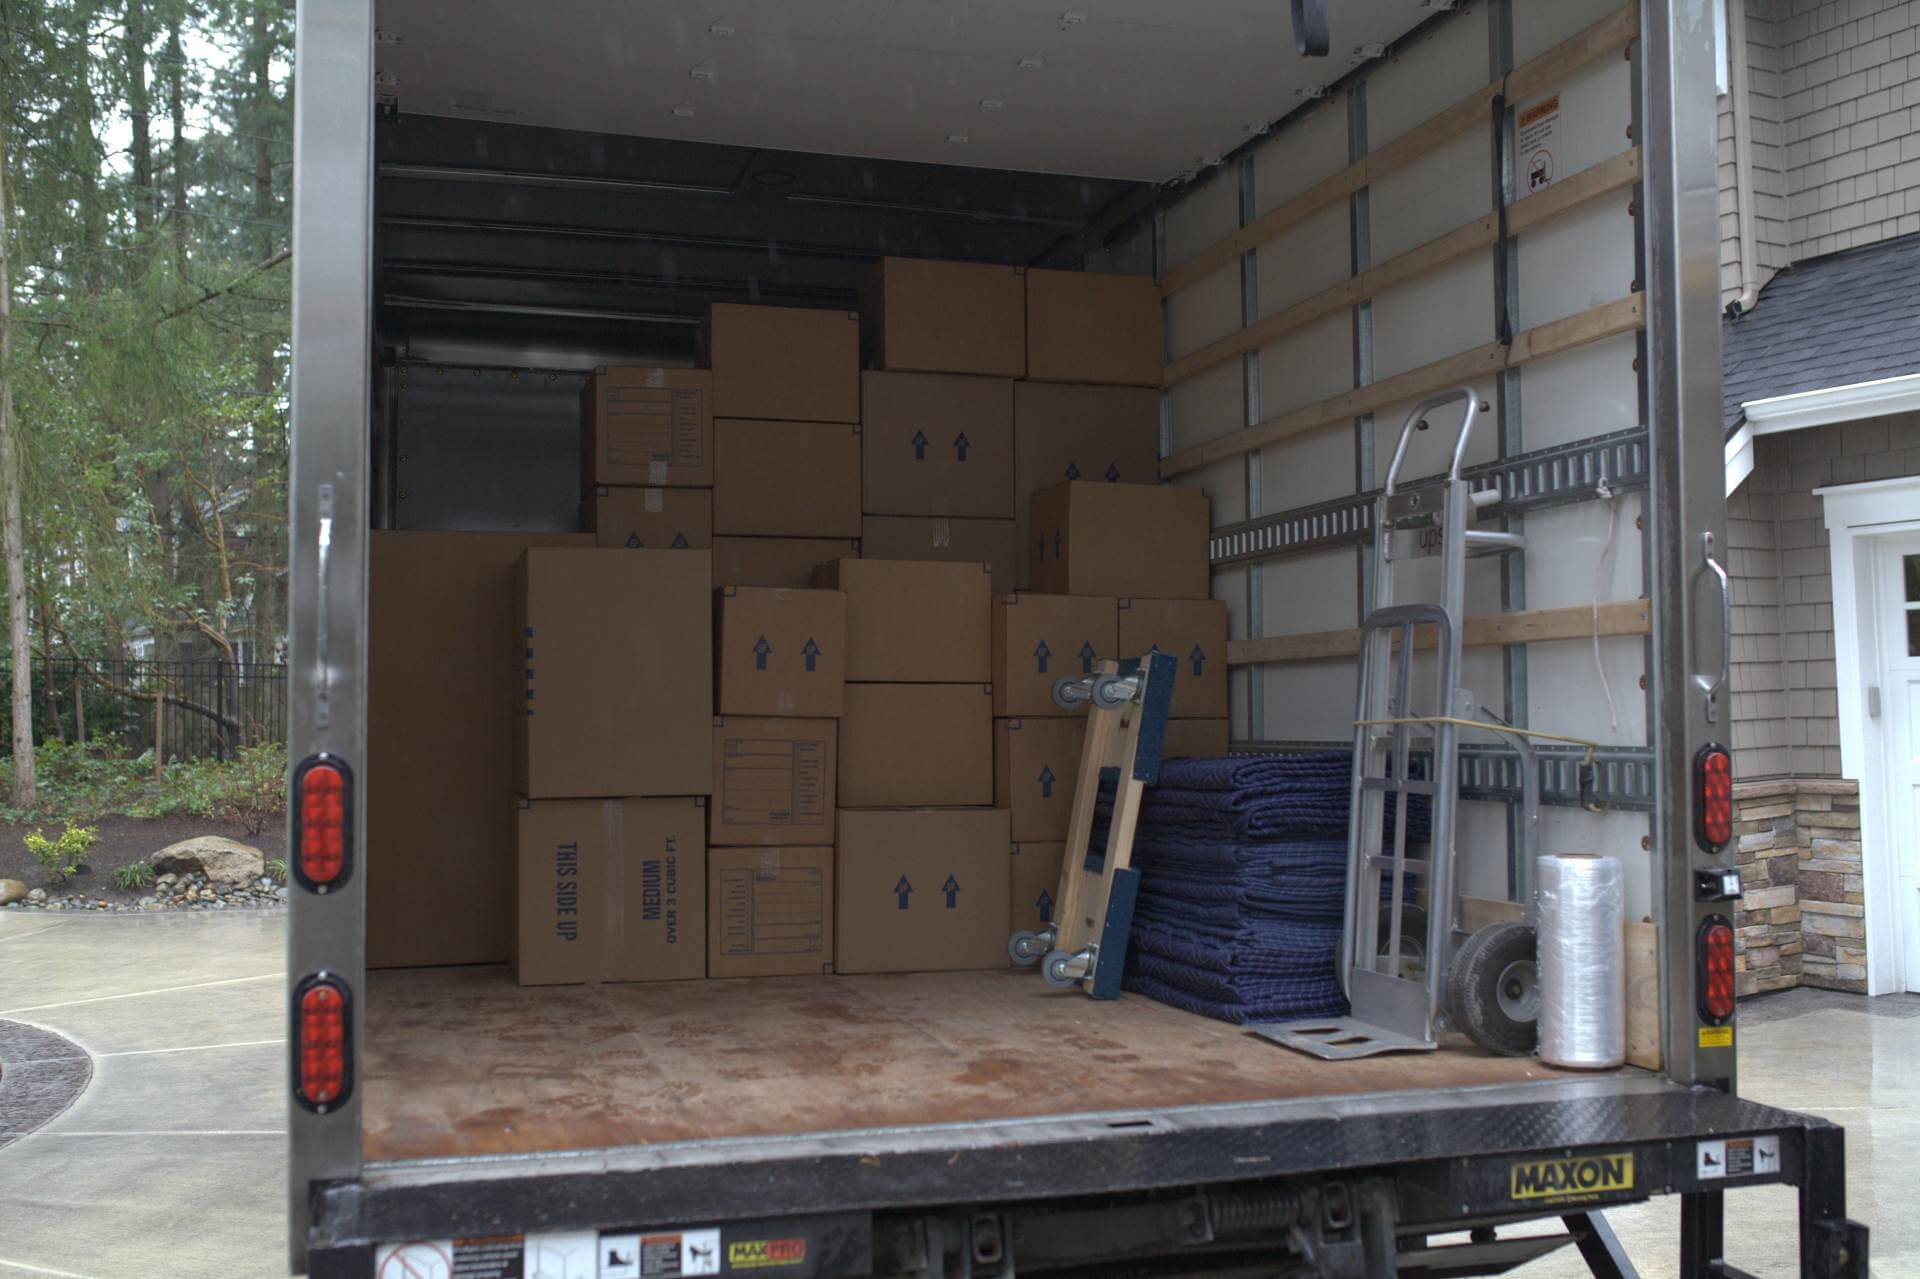 Moving company in Sumner, WA